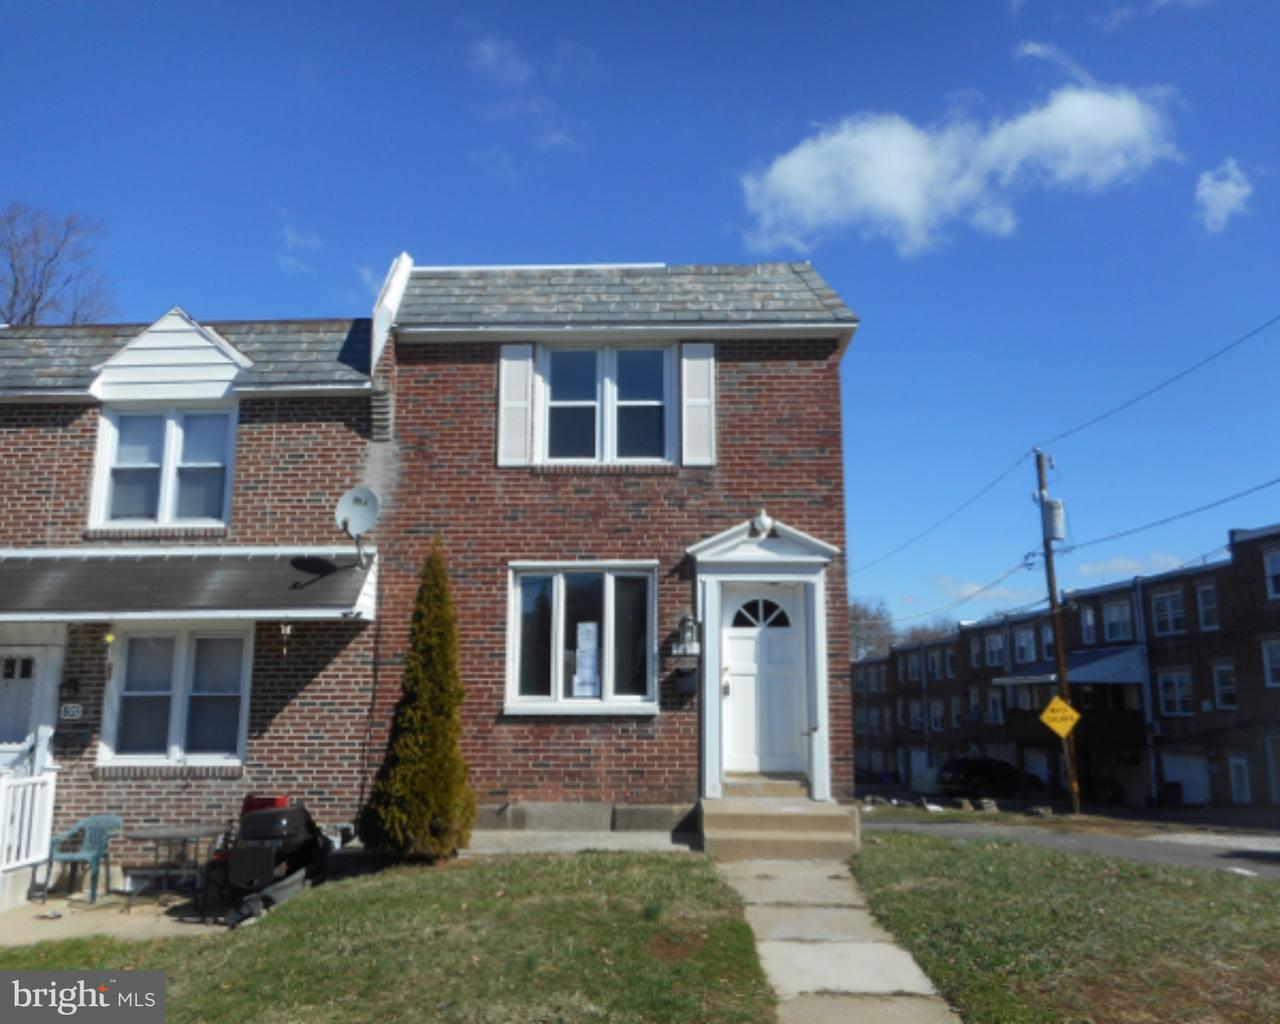 861 Fairfax Road Drexel Hill, PA 19026